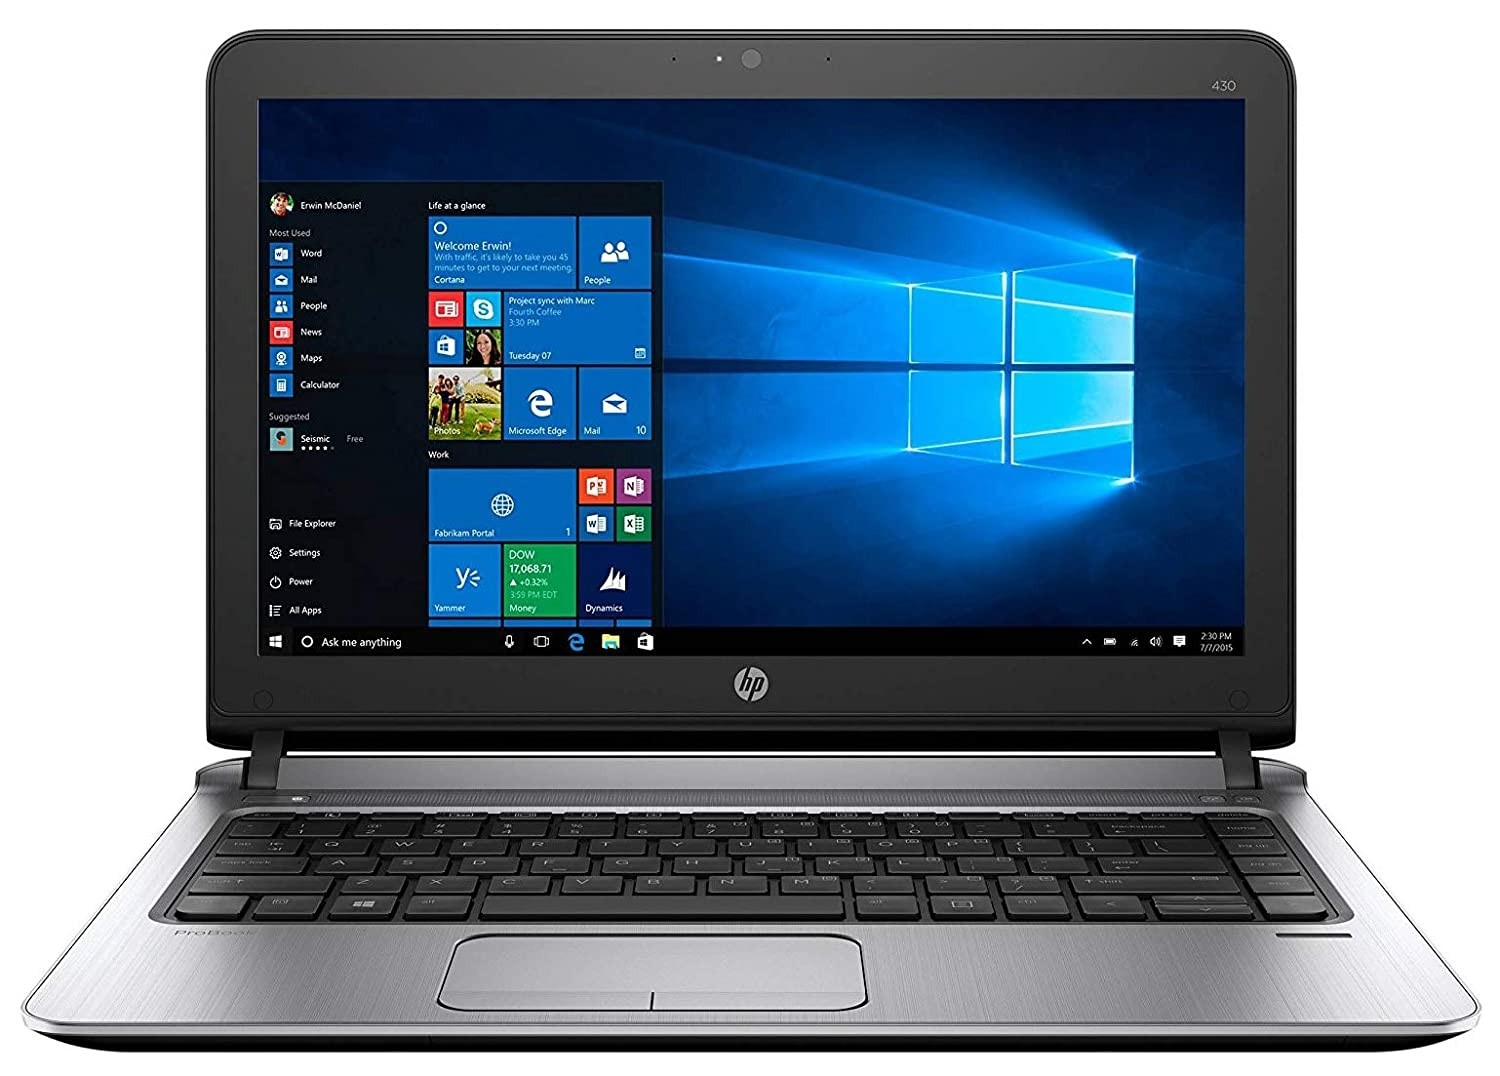 Refurbished laptops & desktops - Refurbished HP Probook 430 G3 (Core I5 6TH Gen/8GB/500GB/Webcam/13.3''/Win-10 Pro)